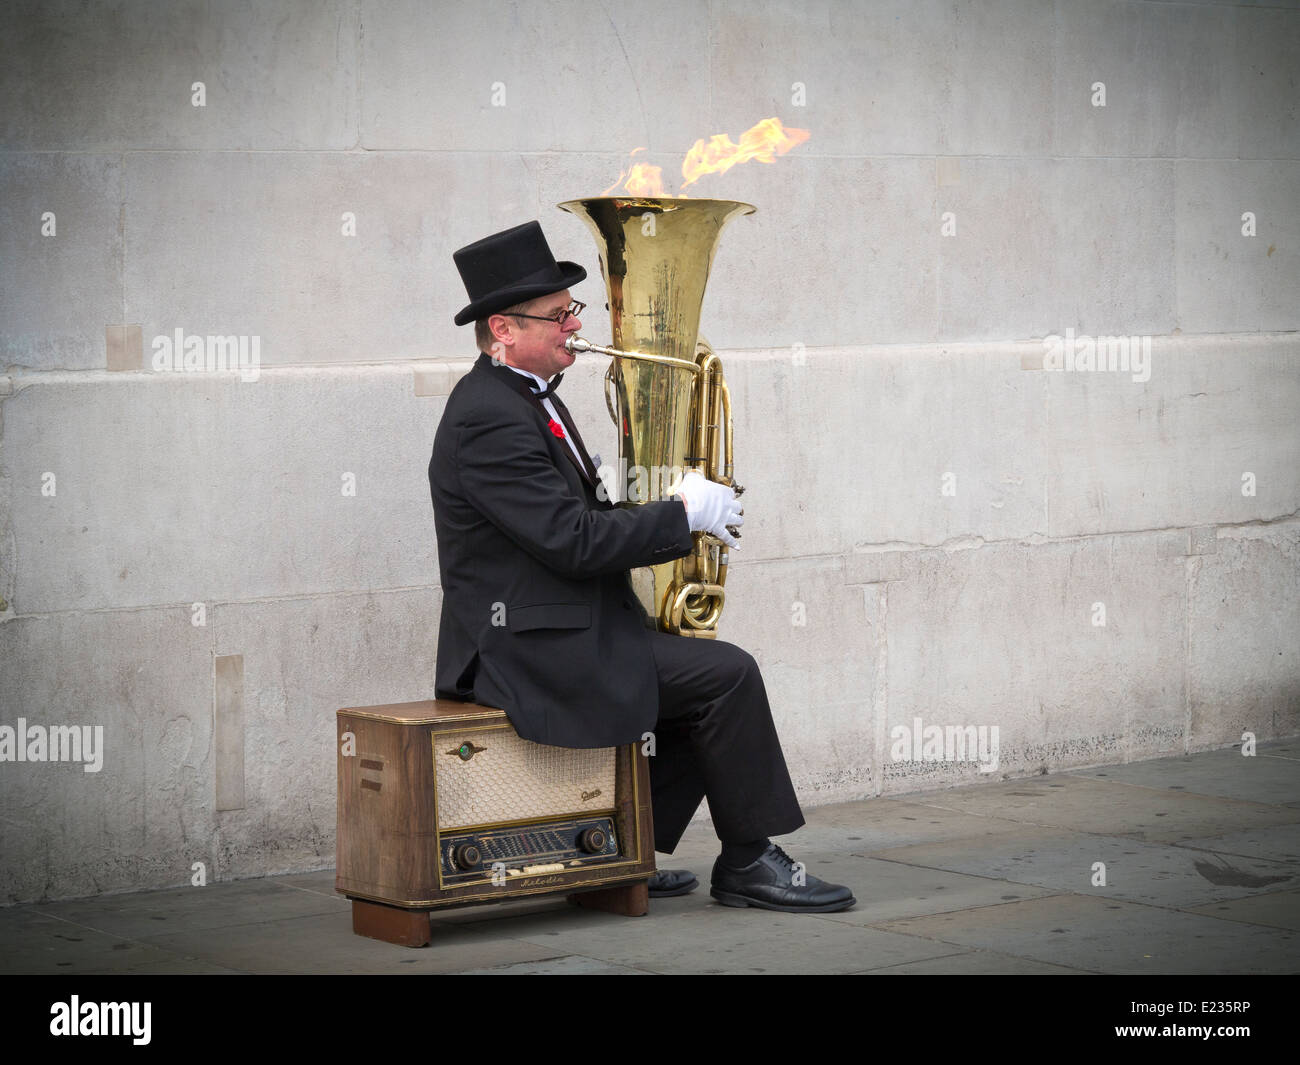 Busker, Christopher Werkowicz playing his flaming tuba sitting on an old radio against a plain stone wall London - Stock Image